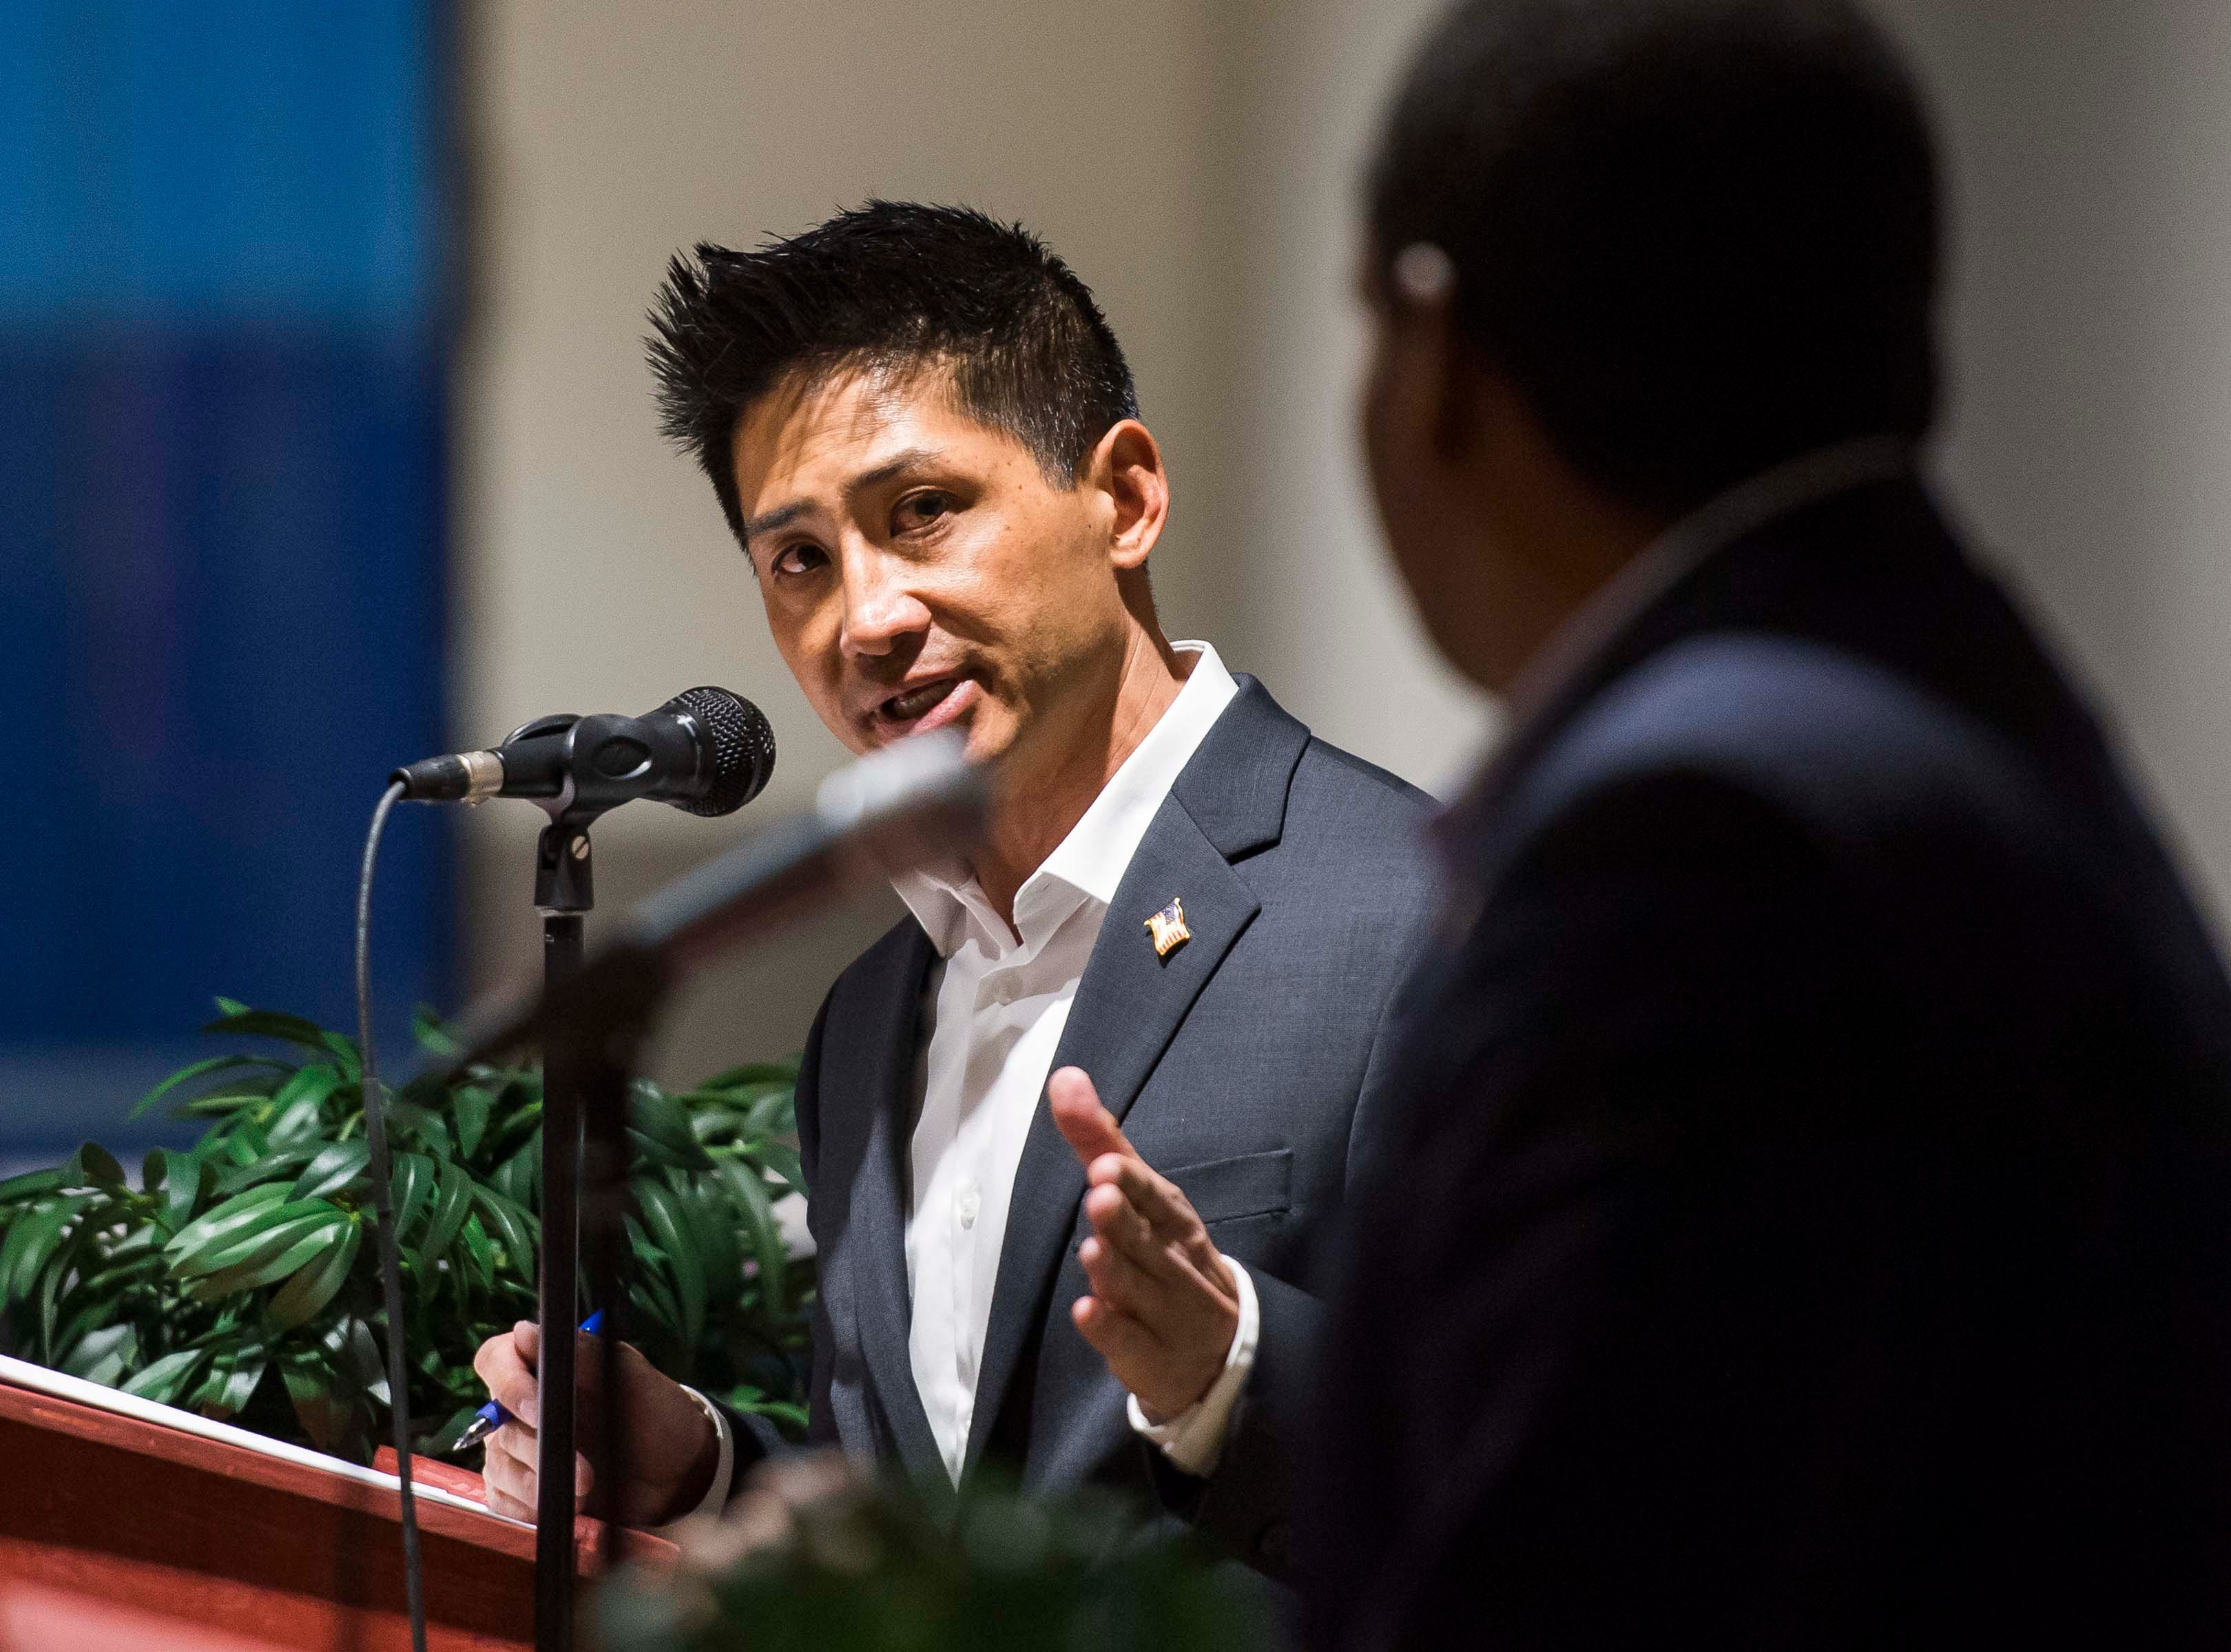 Colorado's 2nd Congressional District Republican nominee Peter Yu cross-examines Democratic nominee Joe Neguse during a debate on Wednesday, Sept. 26, 2018, at the Loveland Classical Schools in Loveland, Colo.